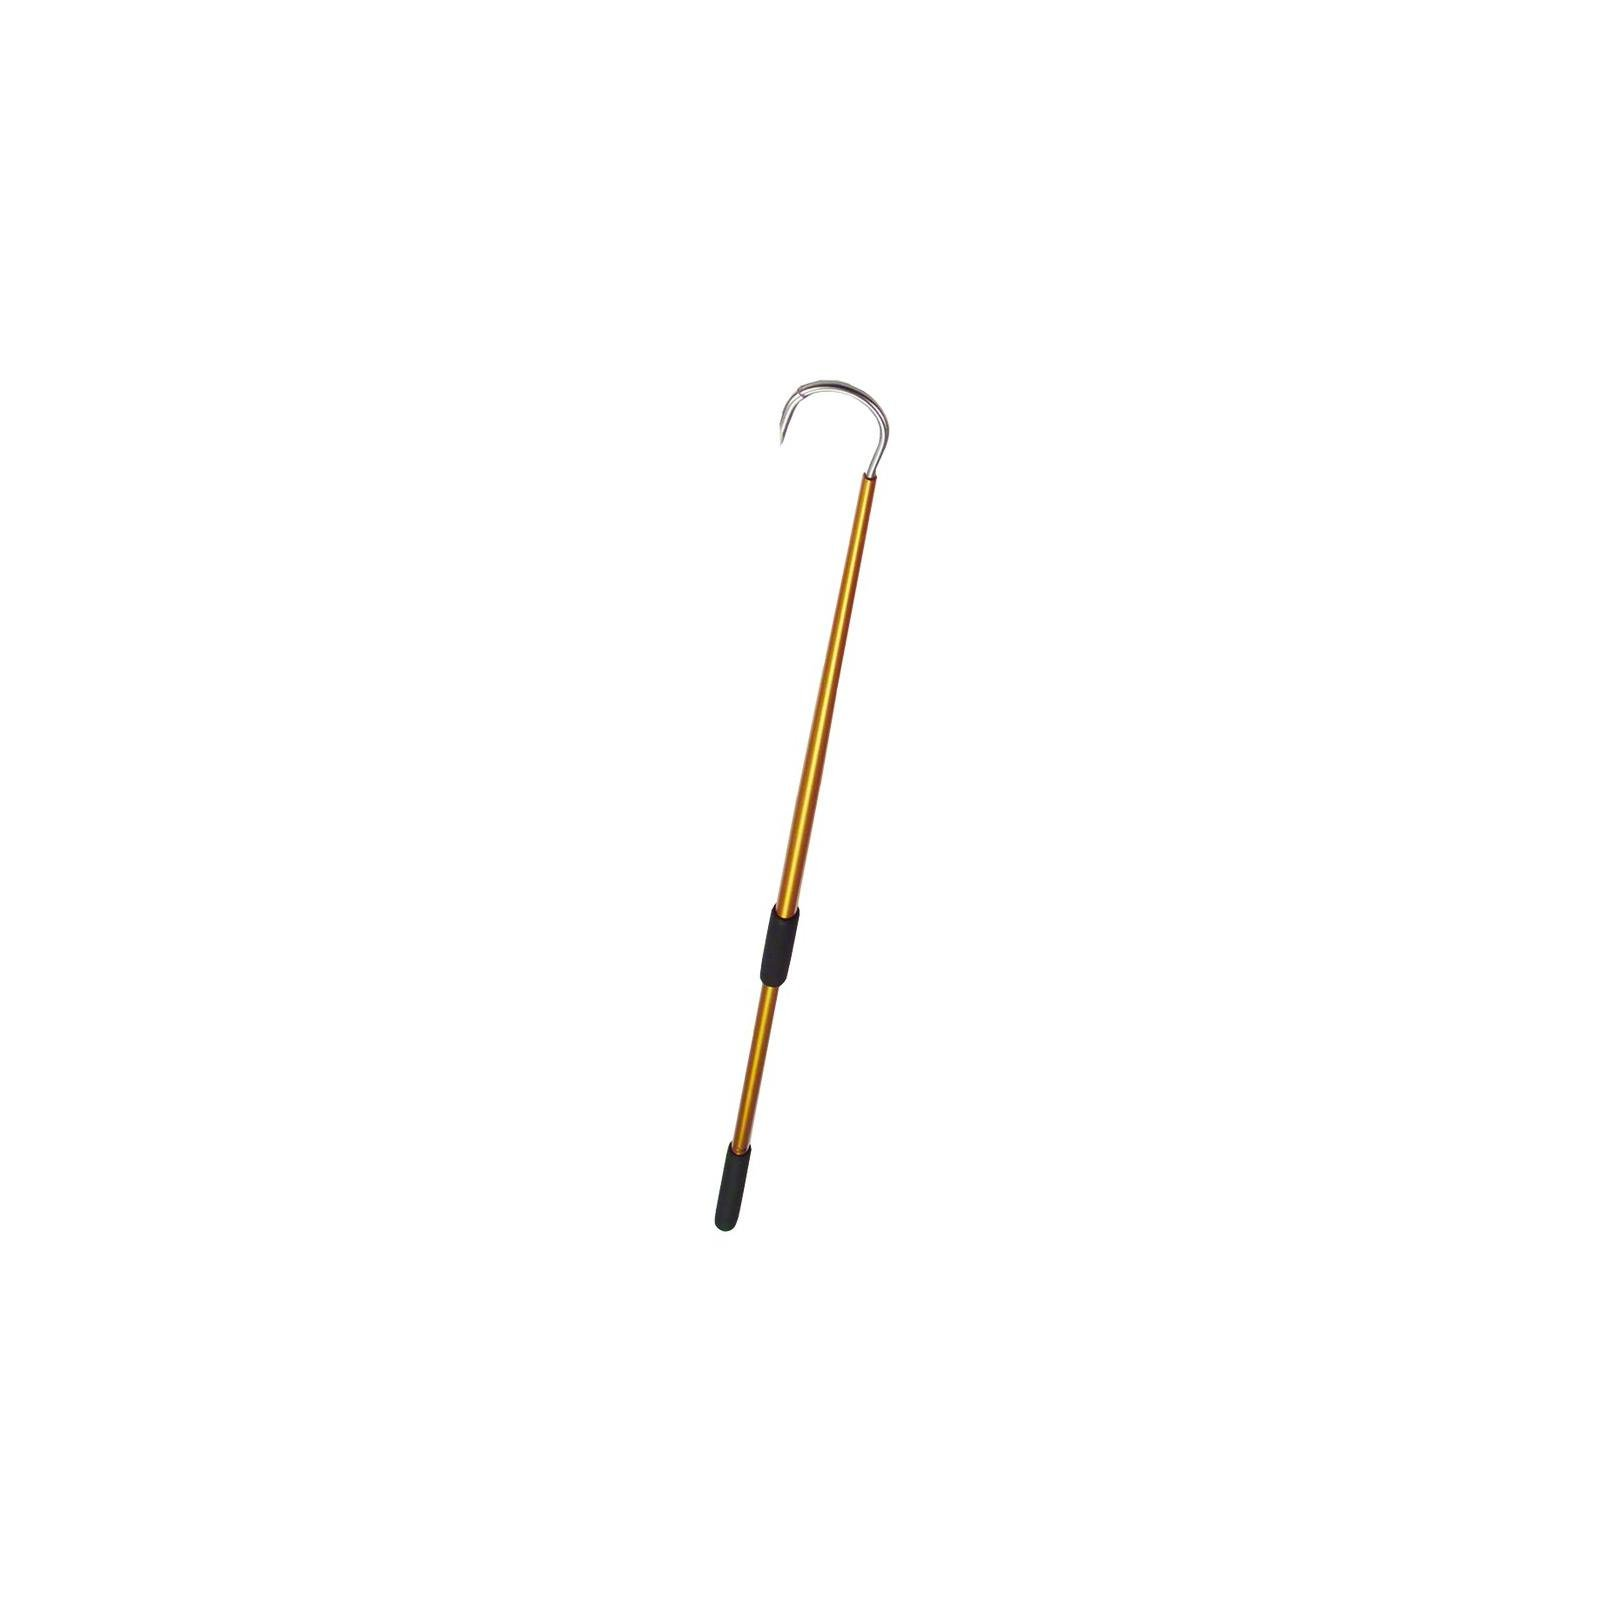 Aftco GFA586GLD Aluminum Fishing Gaff Hook, 5-Inch Hook Throat, 6-Foot Length, Gold Finish by AFTCO